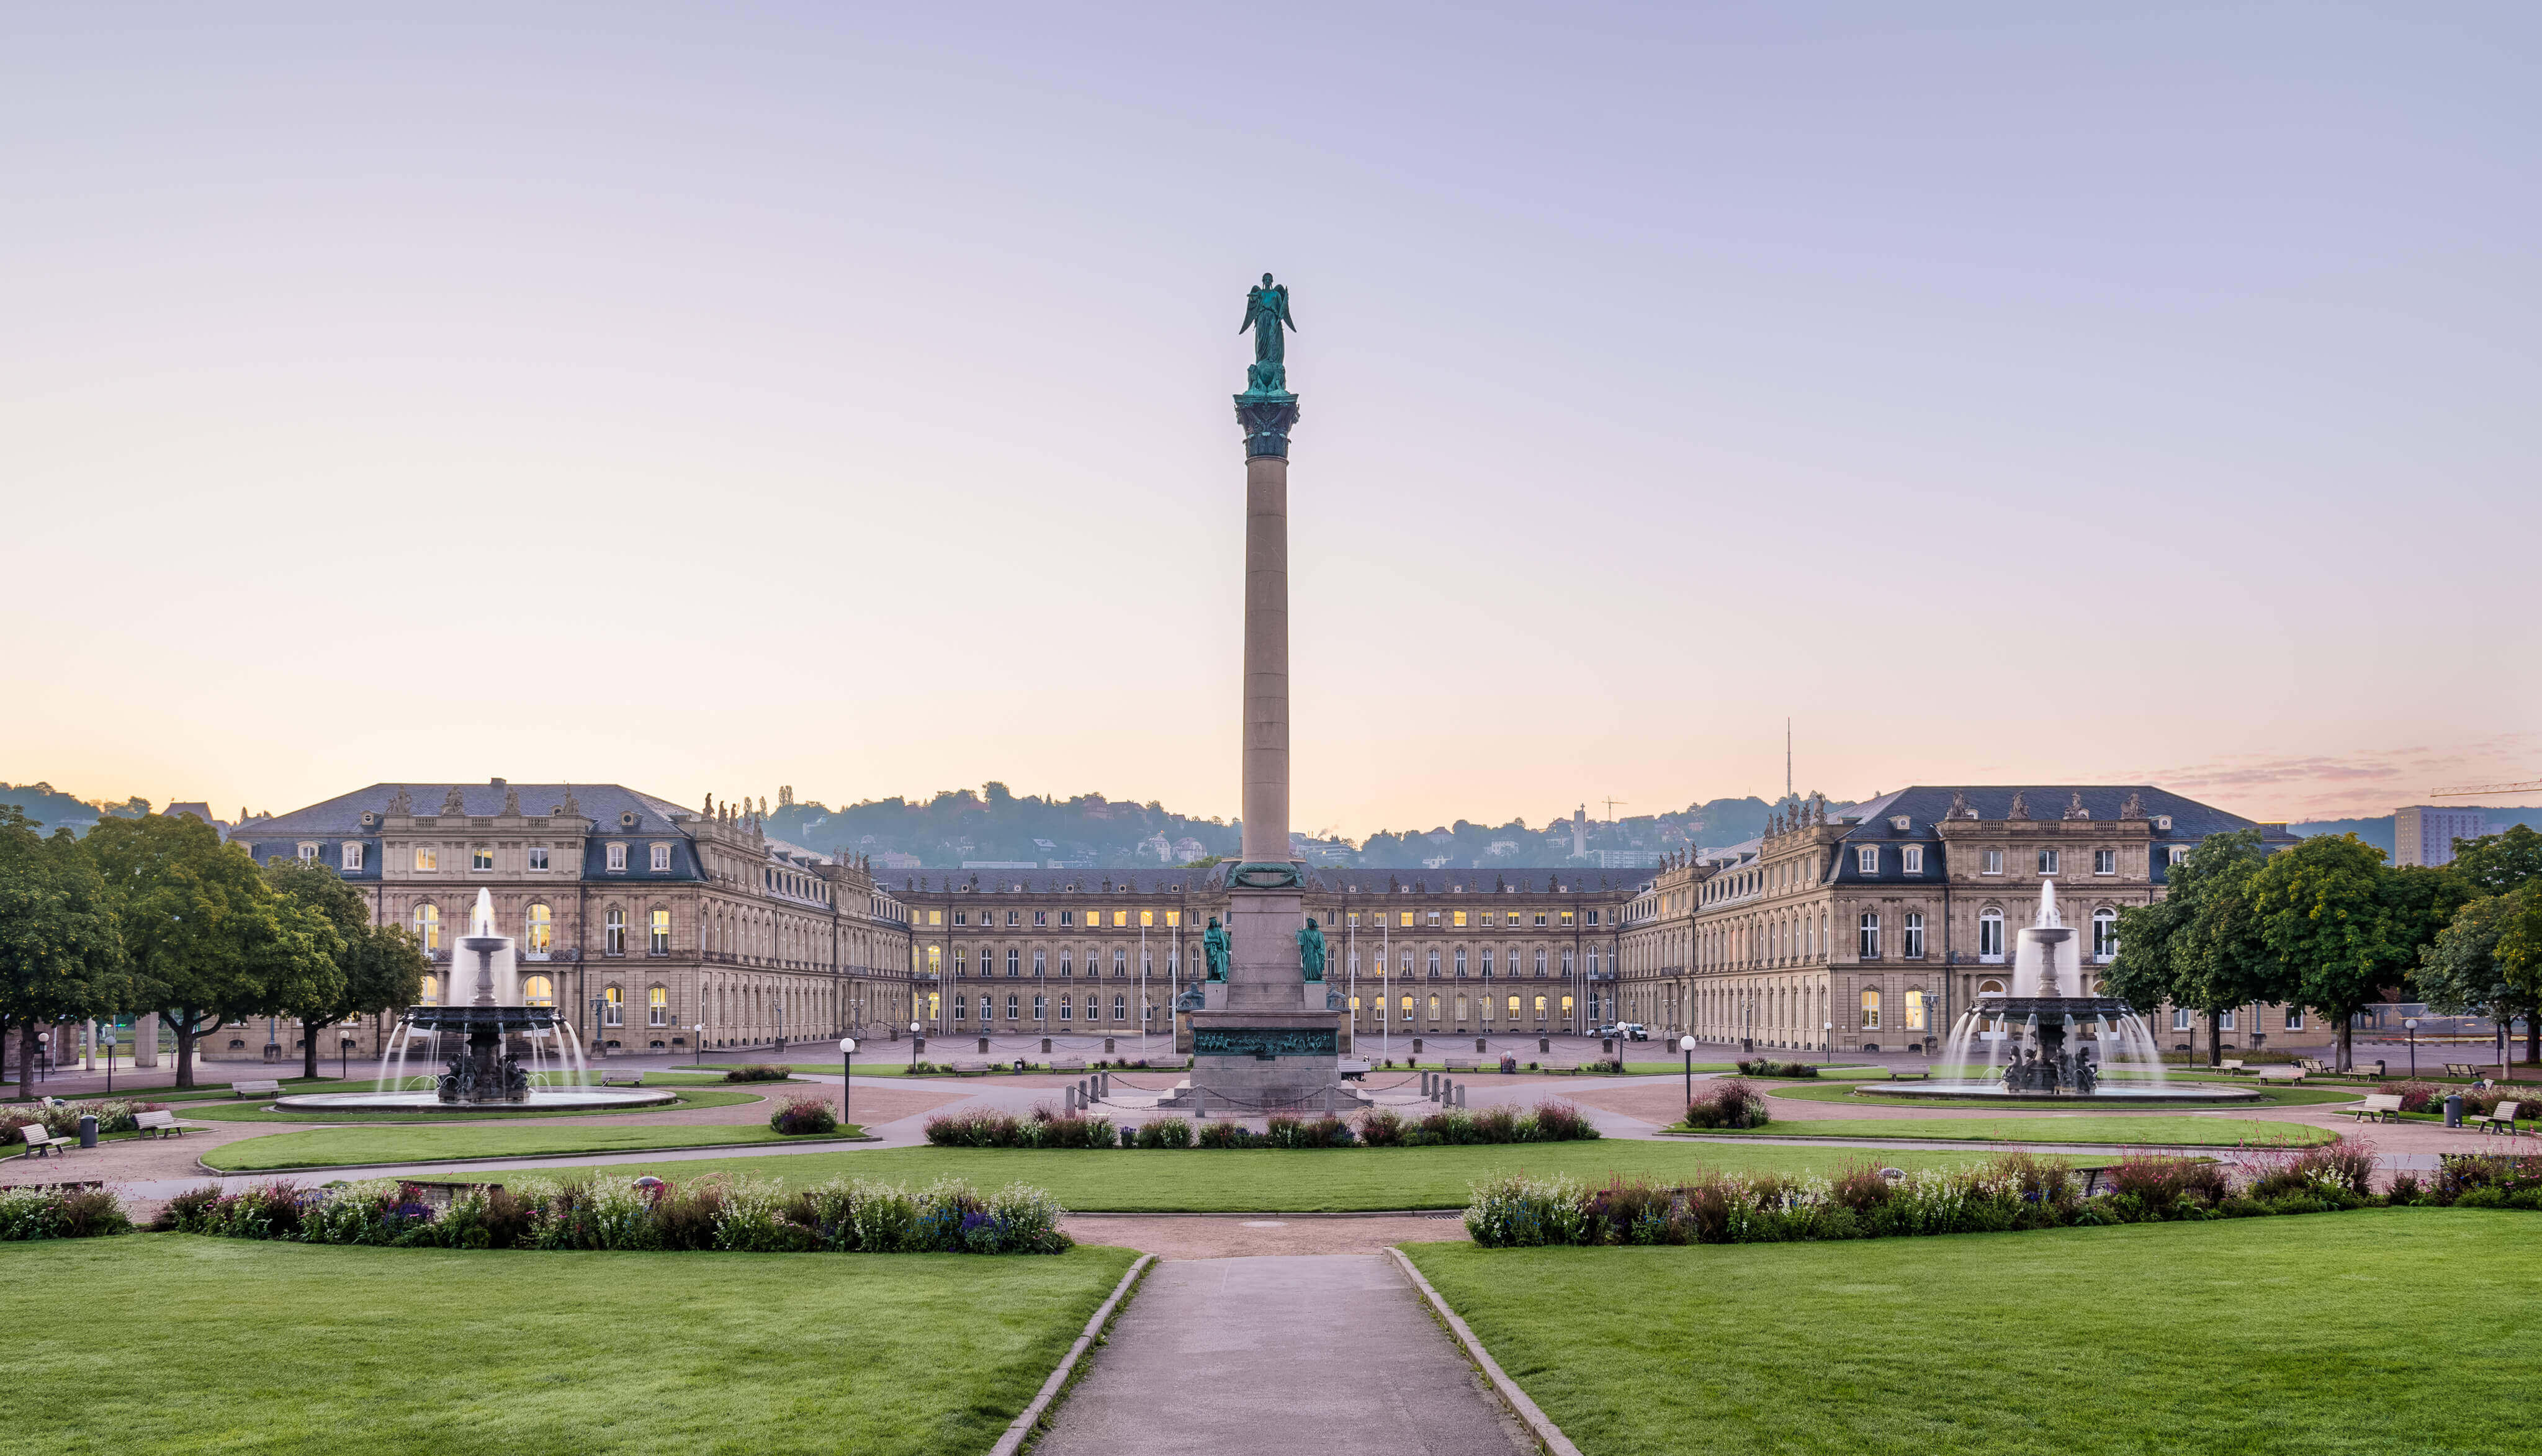 A Complete Travel Guide To Stuttgart, Germany | A Small Town With Best Vineyards